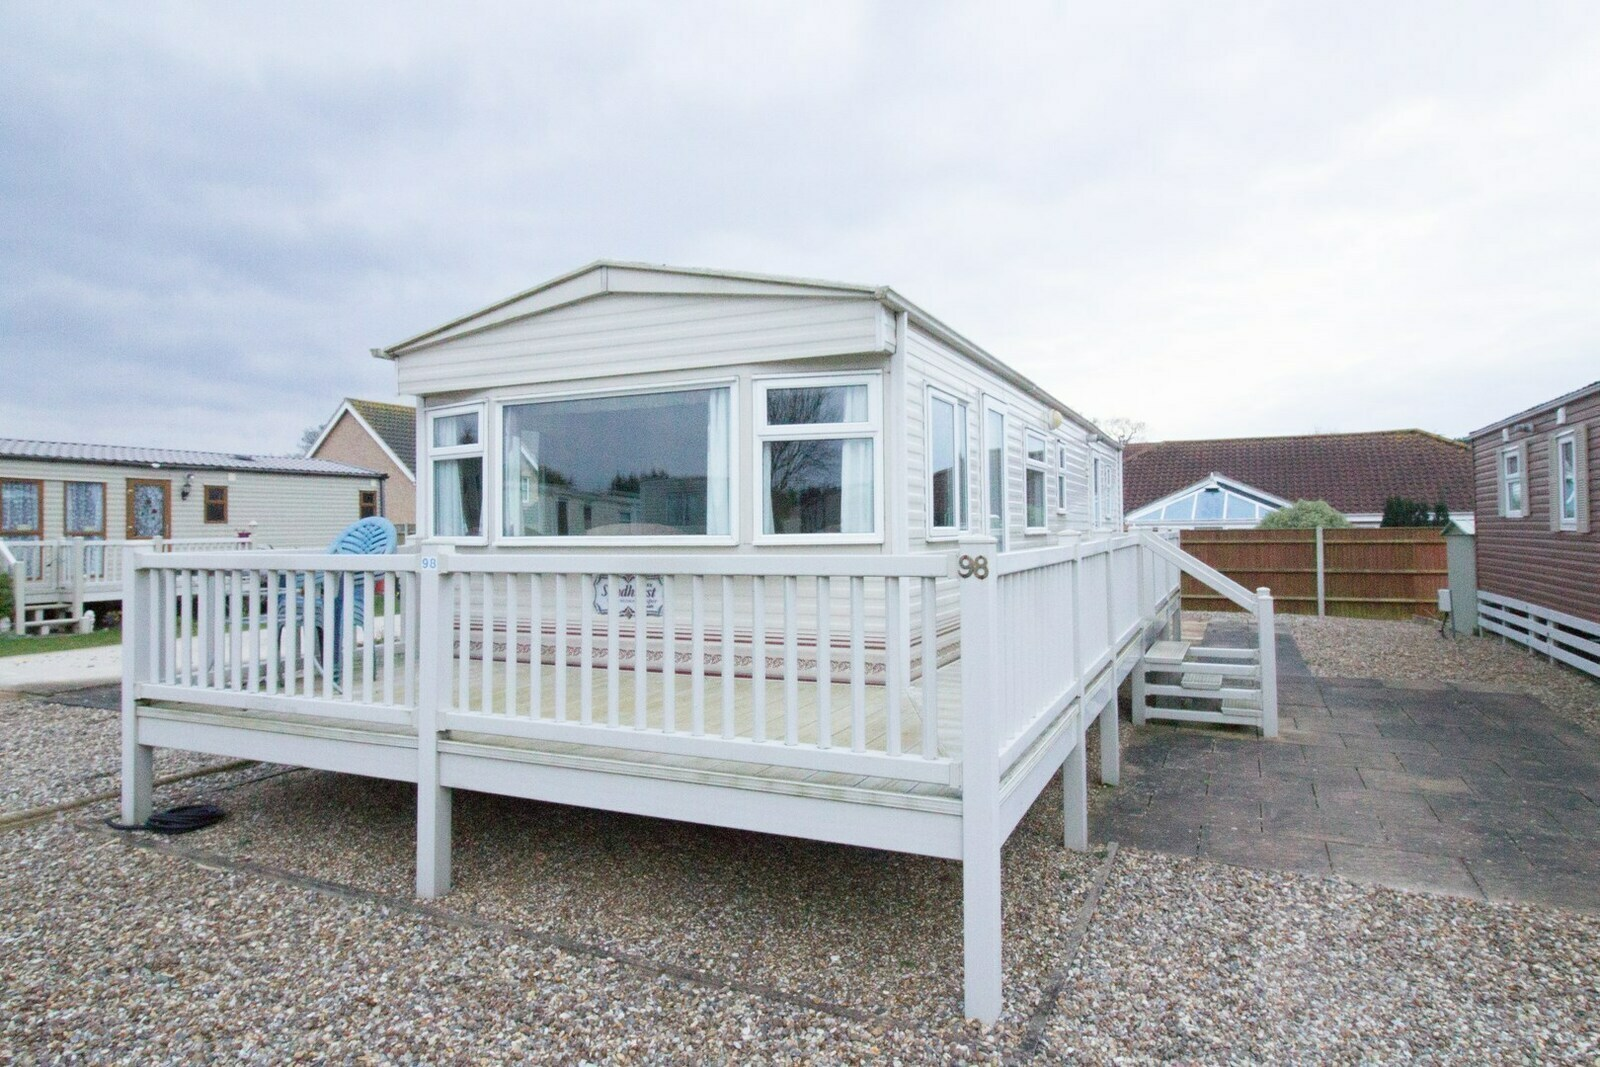 10098 Bure Village area, 2 Bed, 4 Berth. D/g & C/H Quiet area of park. Emerald rated. - Cover Image